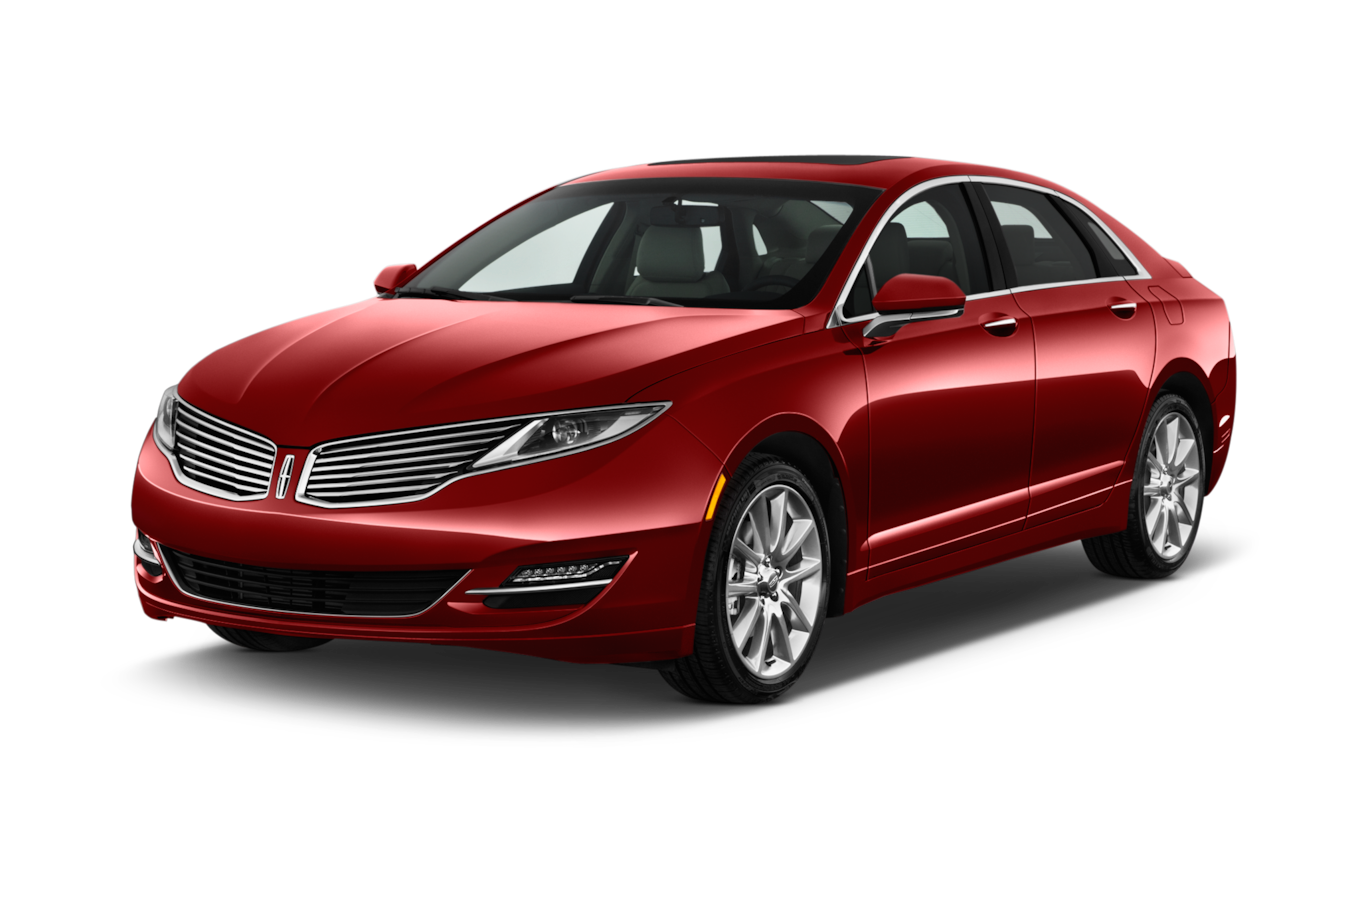 2017 Mkz | 2017 - 2018 Best Cars Reviews